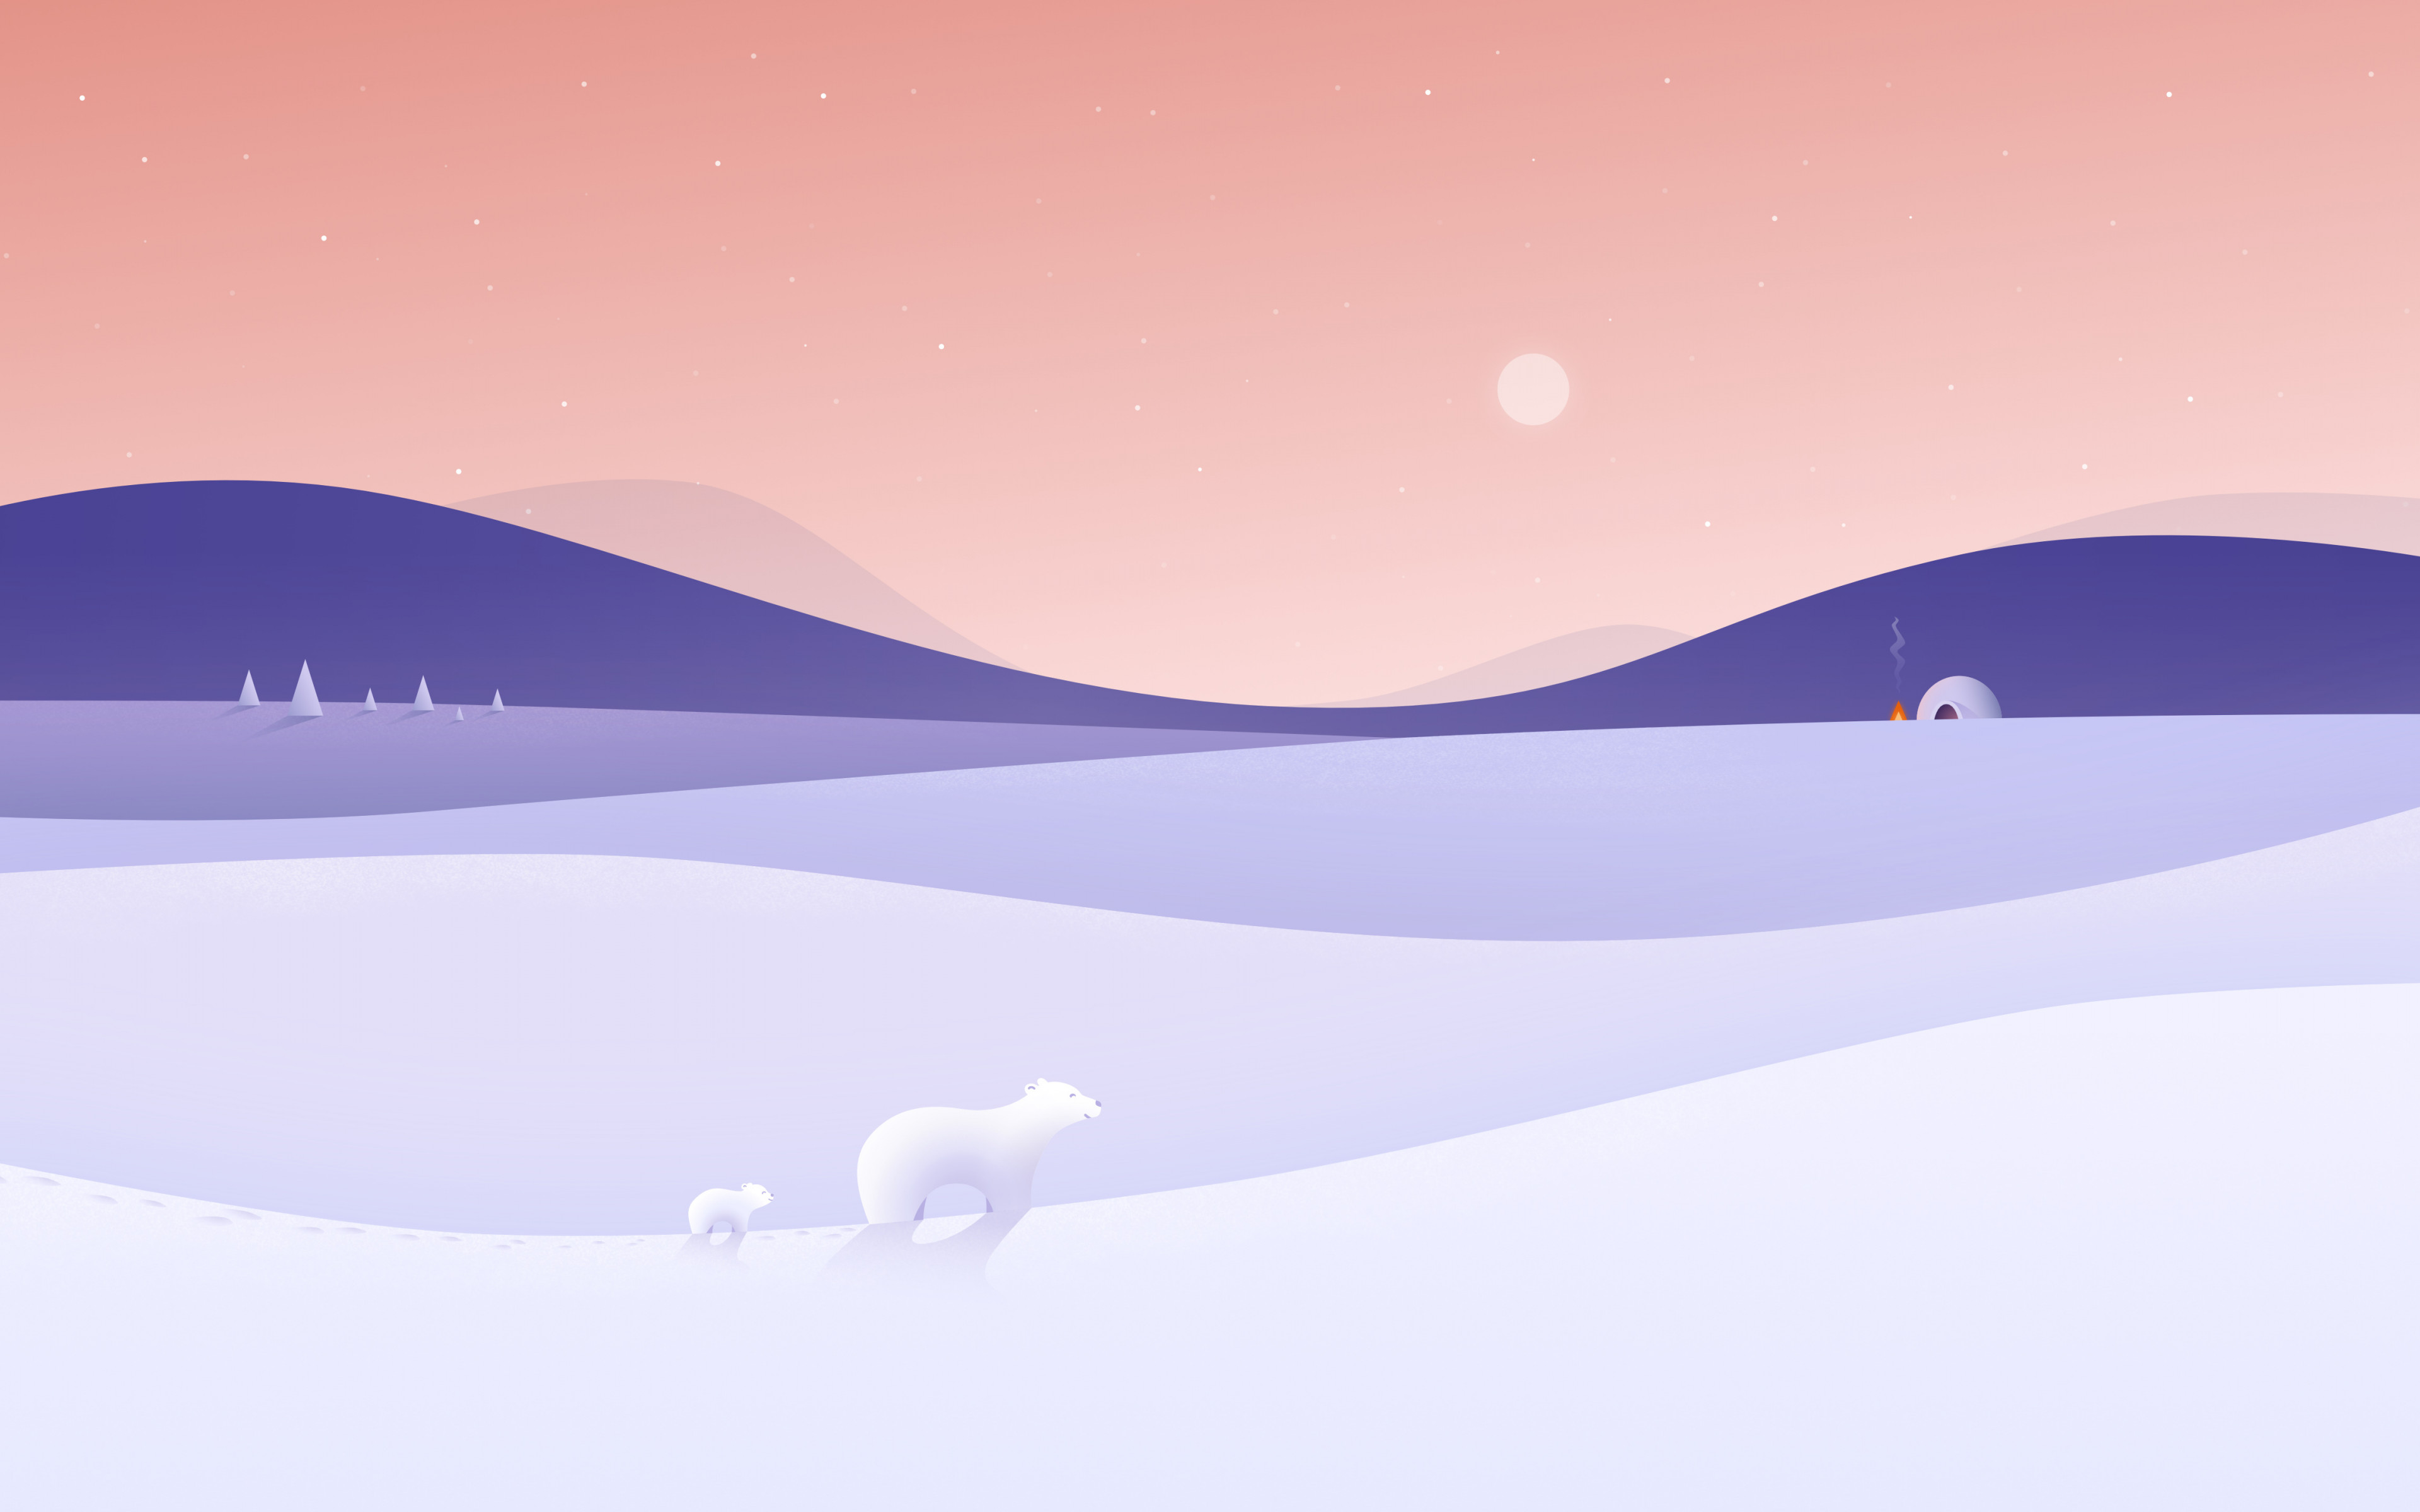 Polar bears illustration wallpaper 3840x2400